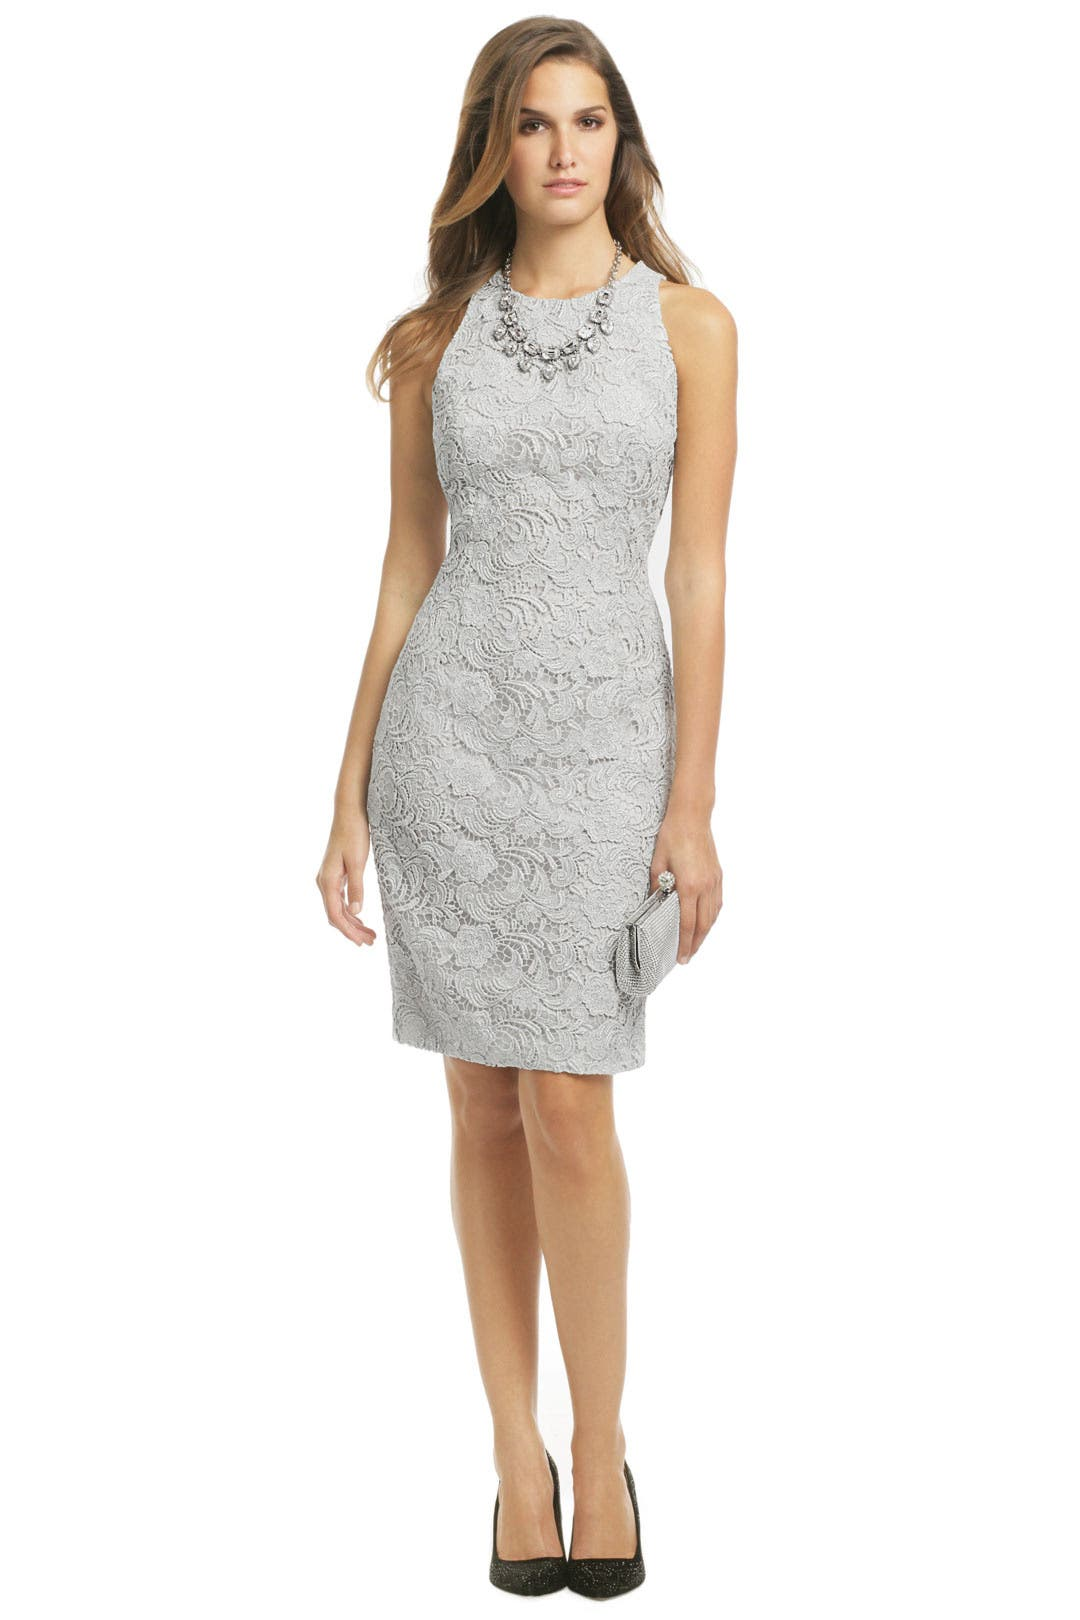 Love Is In The Air Sheath by Carmen Marc Valvo